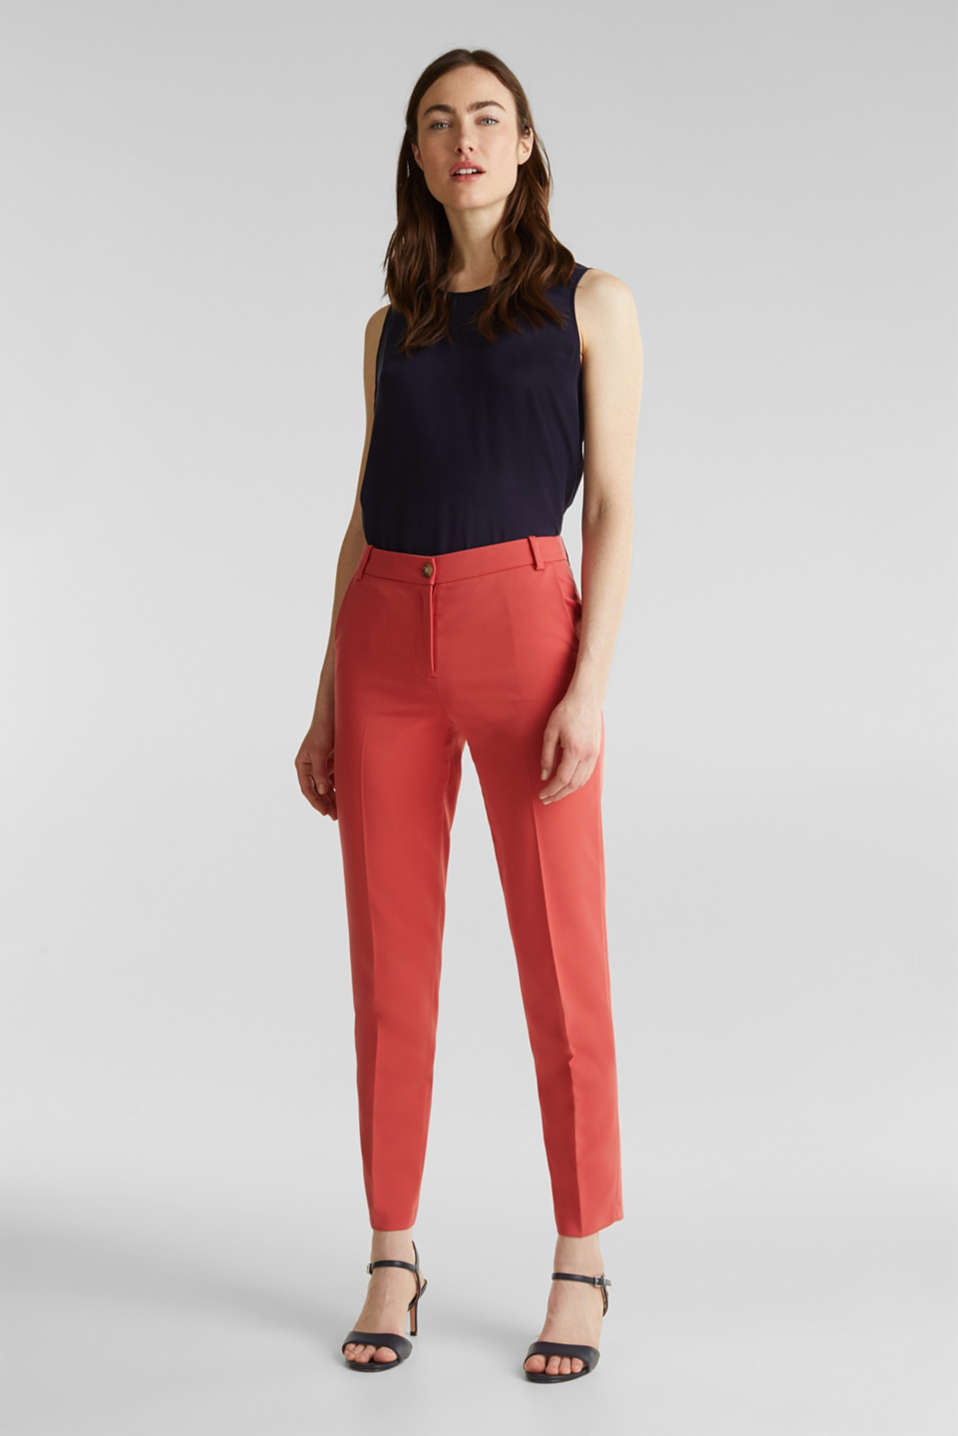 SPRING TWILL Mix + Match stretch trousers, TERRACOTTA, detail image number 0